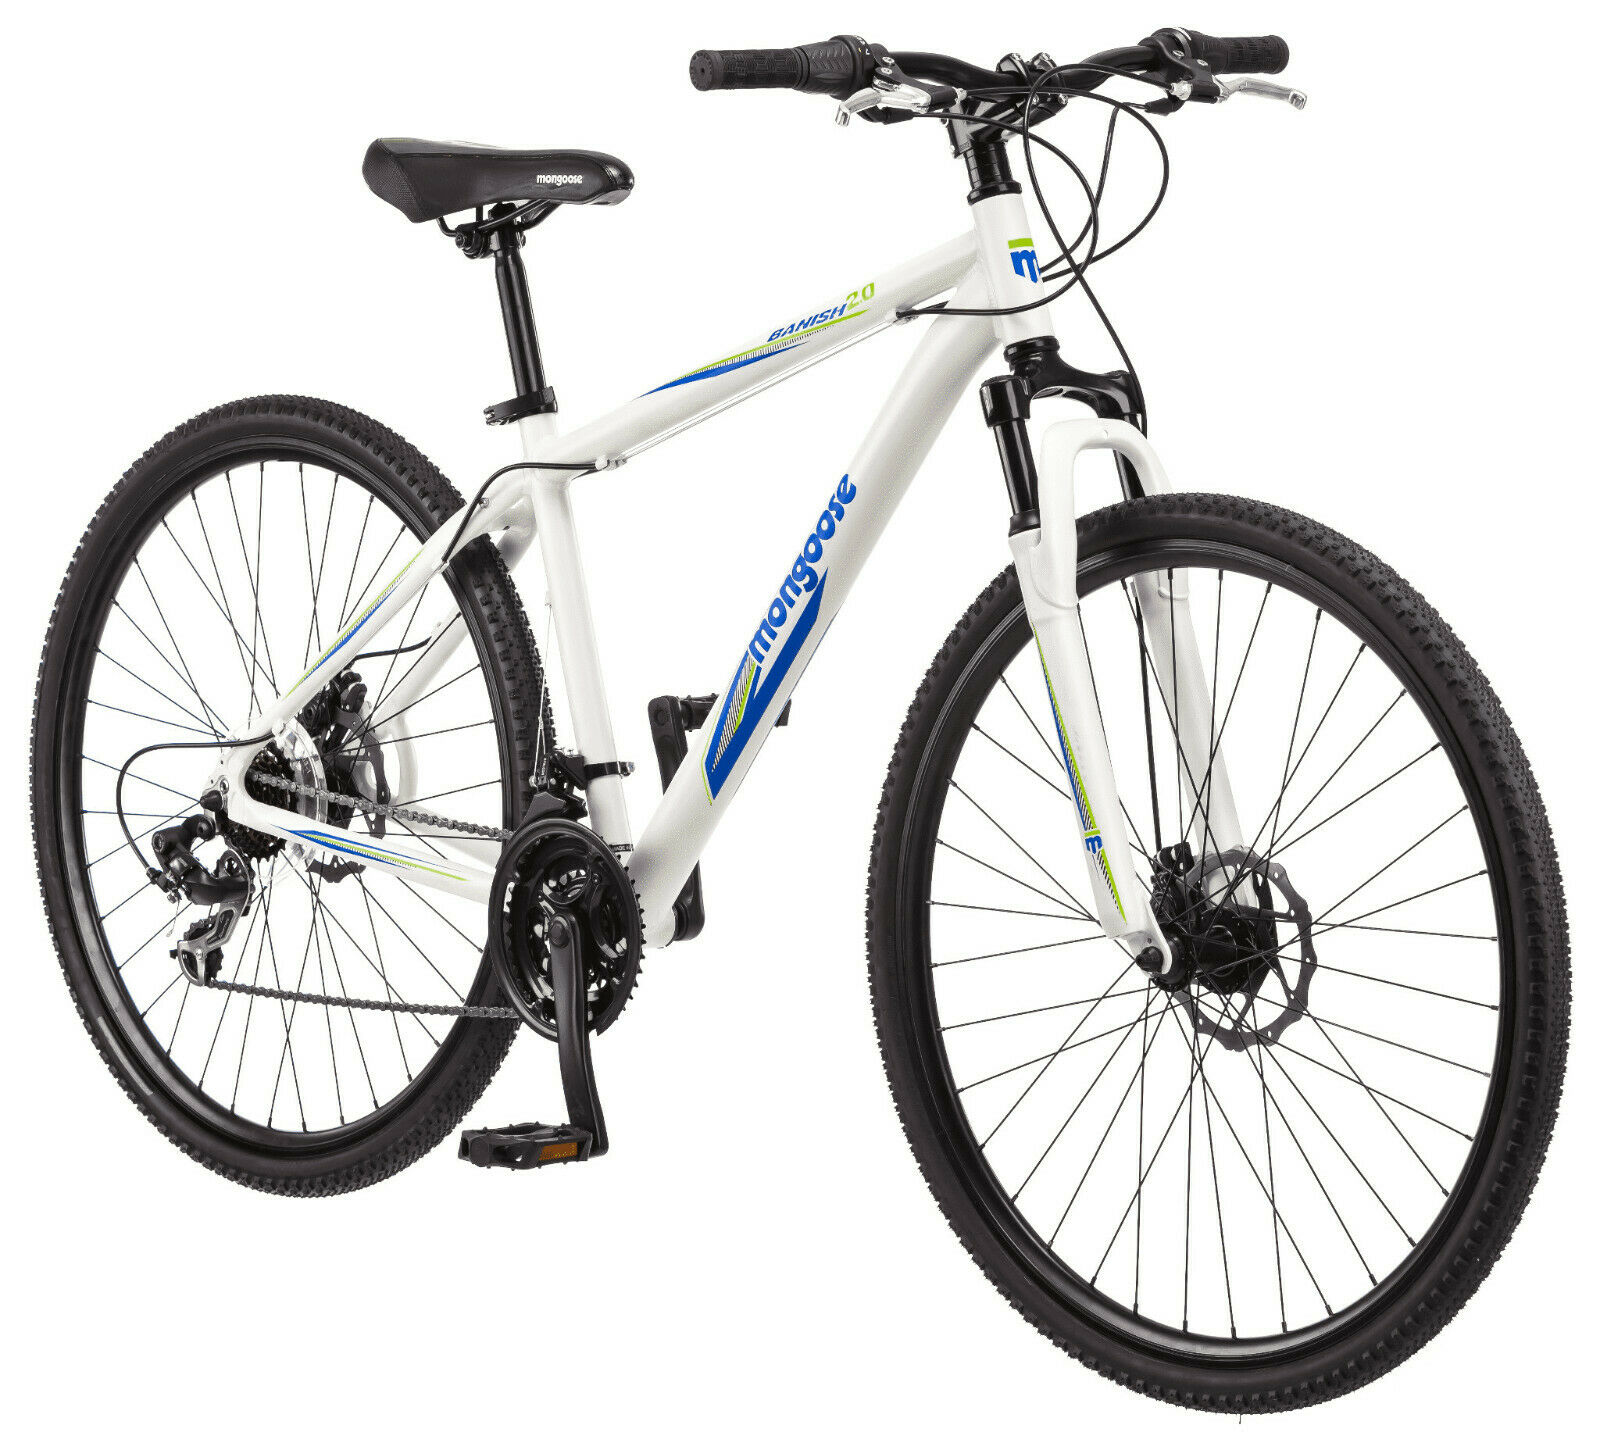 6e3199477c7 Find Mongoose Mountain Bikes for sale